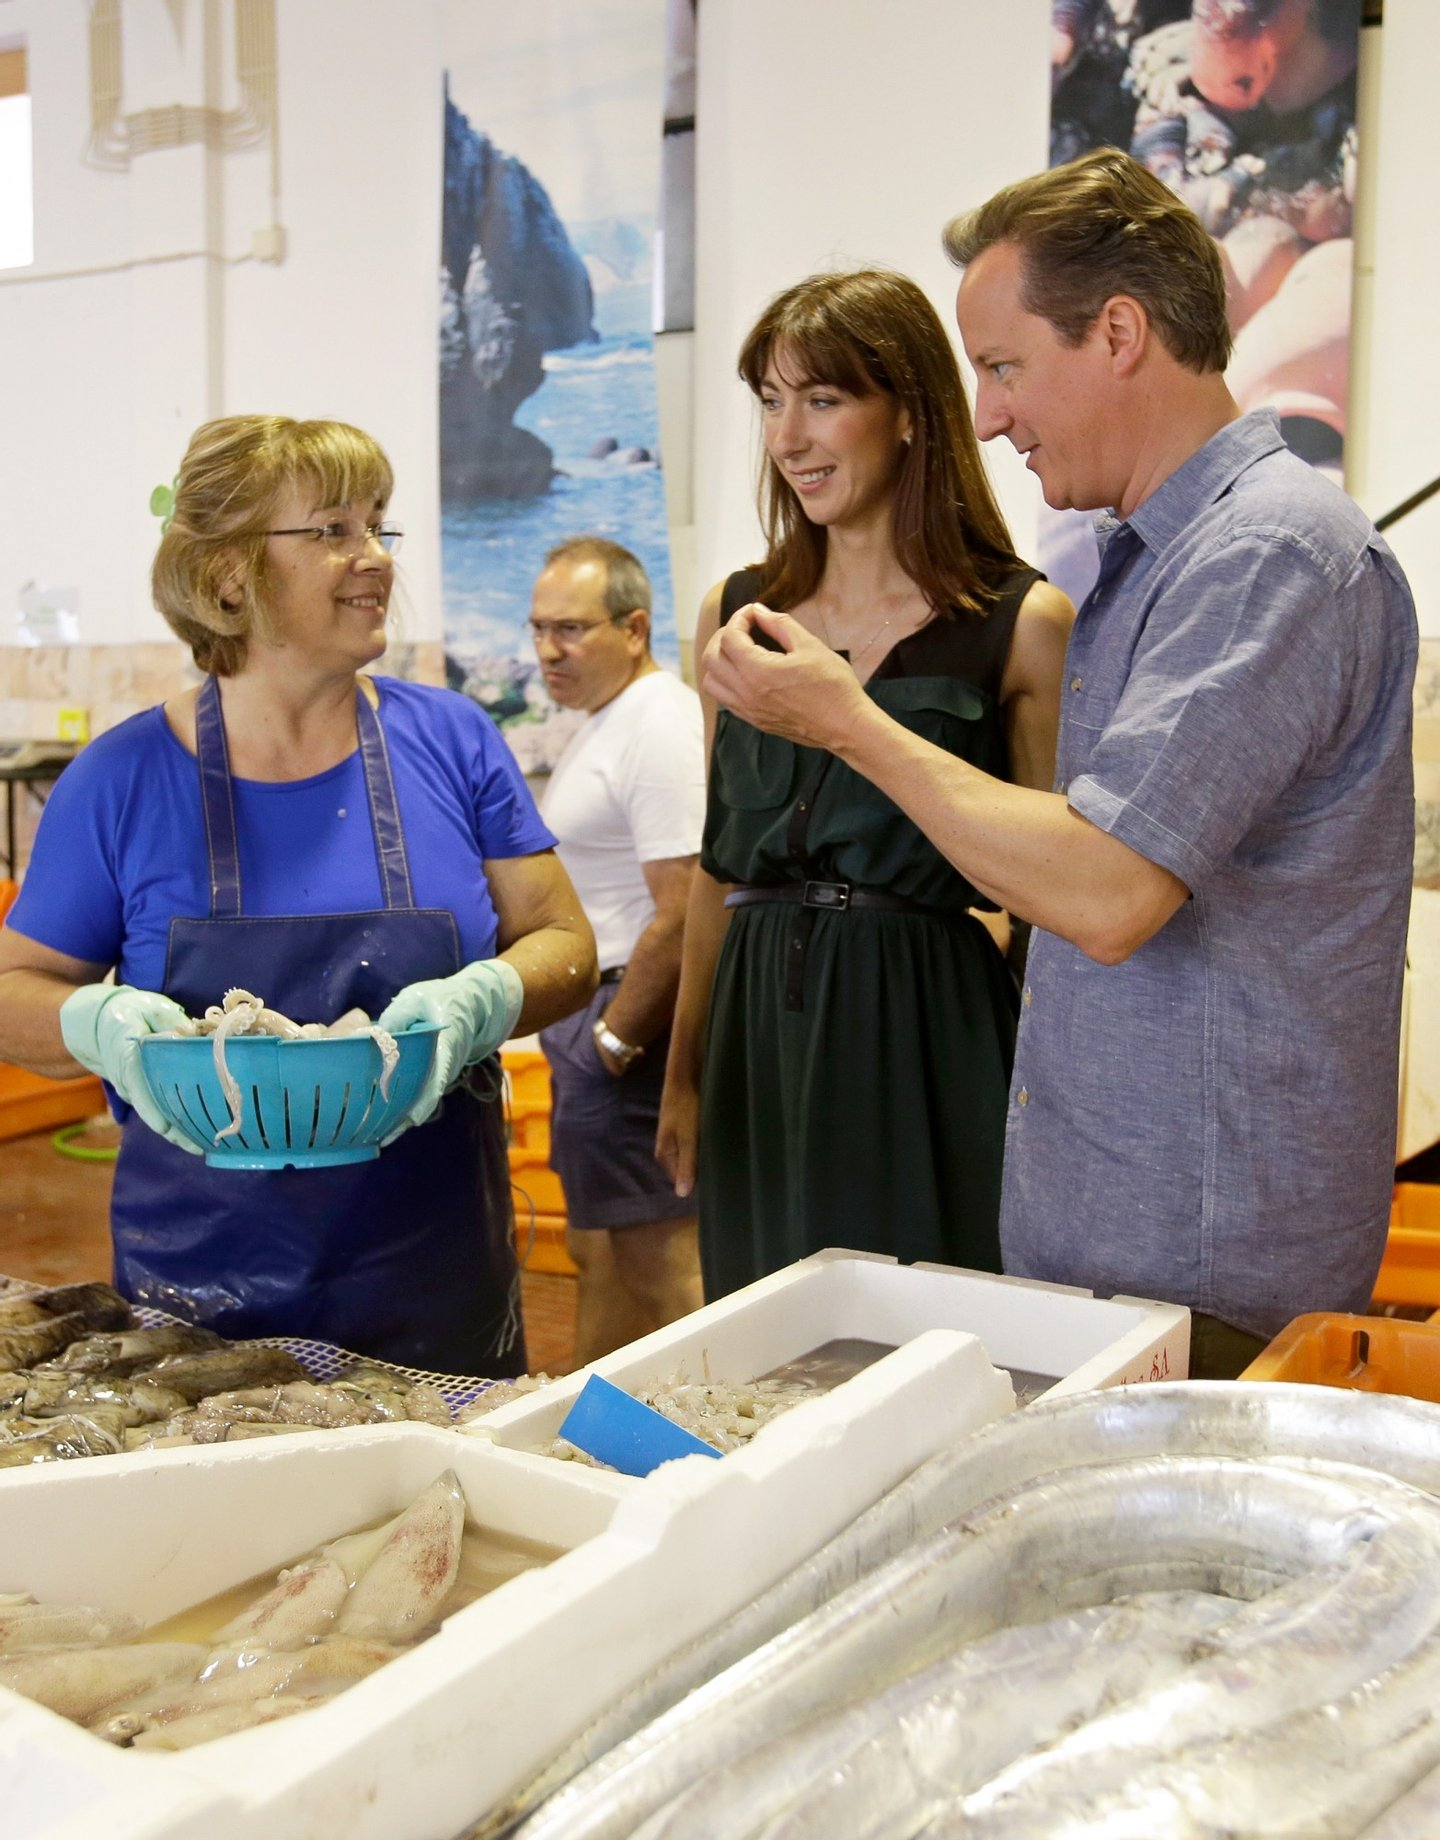 British Prime Minister David Cameron and his wife Samantha buy squid in a market while on holiday in Aljezur, in the southwestern coast of Portugal, on July 26, 2013. AFP PHOTO/POOL/ARMANDO FRANCA        (Photo credit should read ARMANDO FRANCA/AFP/Getty Images)